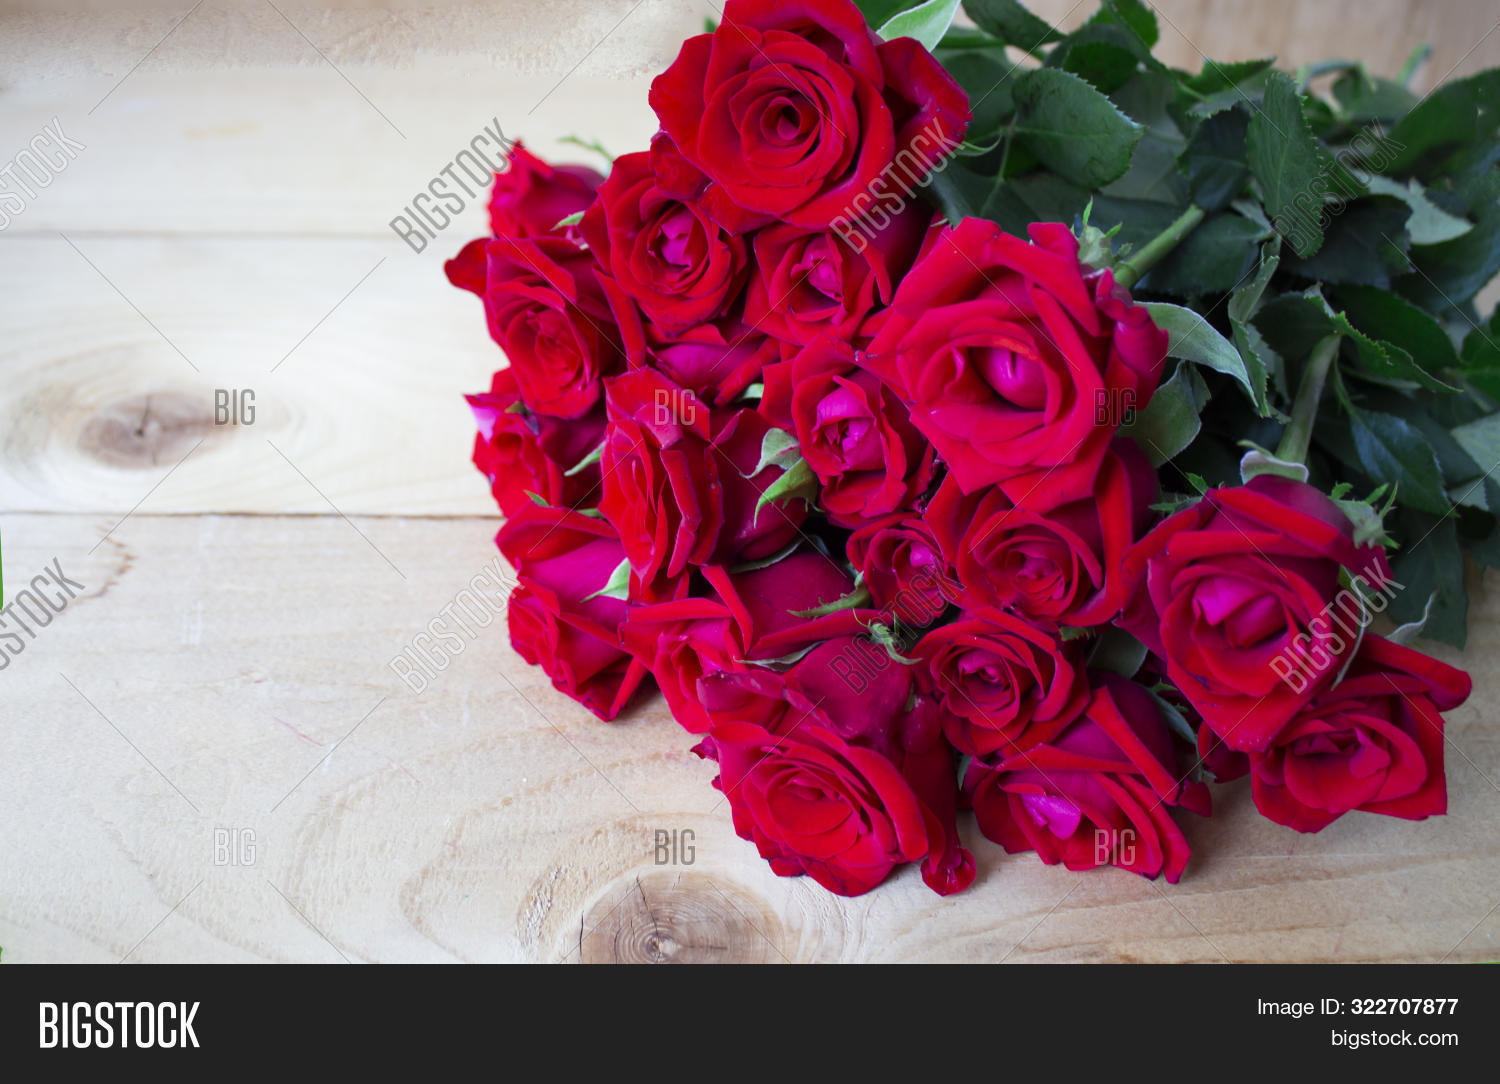 alloy,artistically,background,beautiful,beauty,border,botanical,bouquet,card,colorful-flower,concept,day,decoration,flowers,image,roses